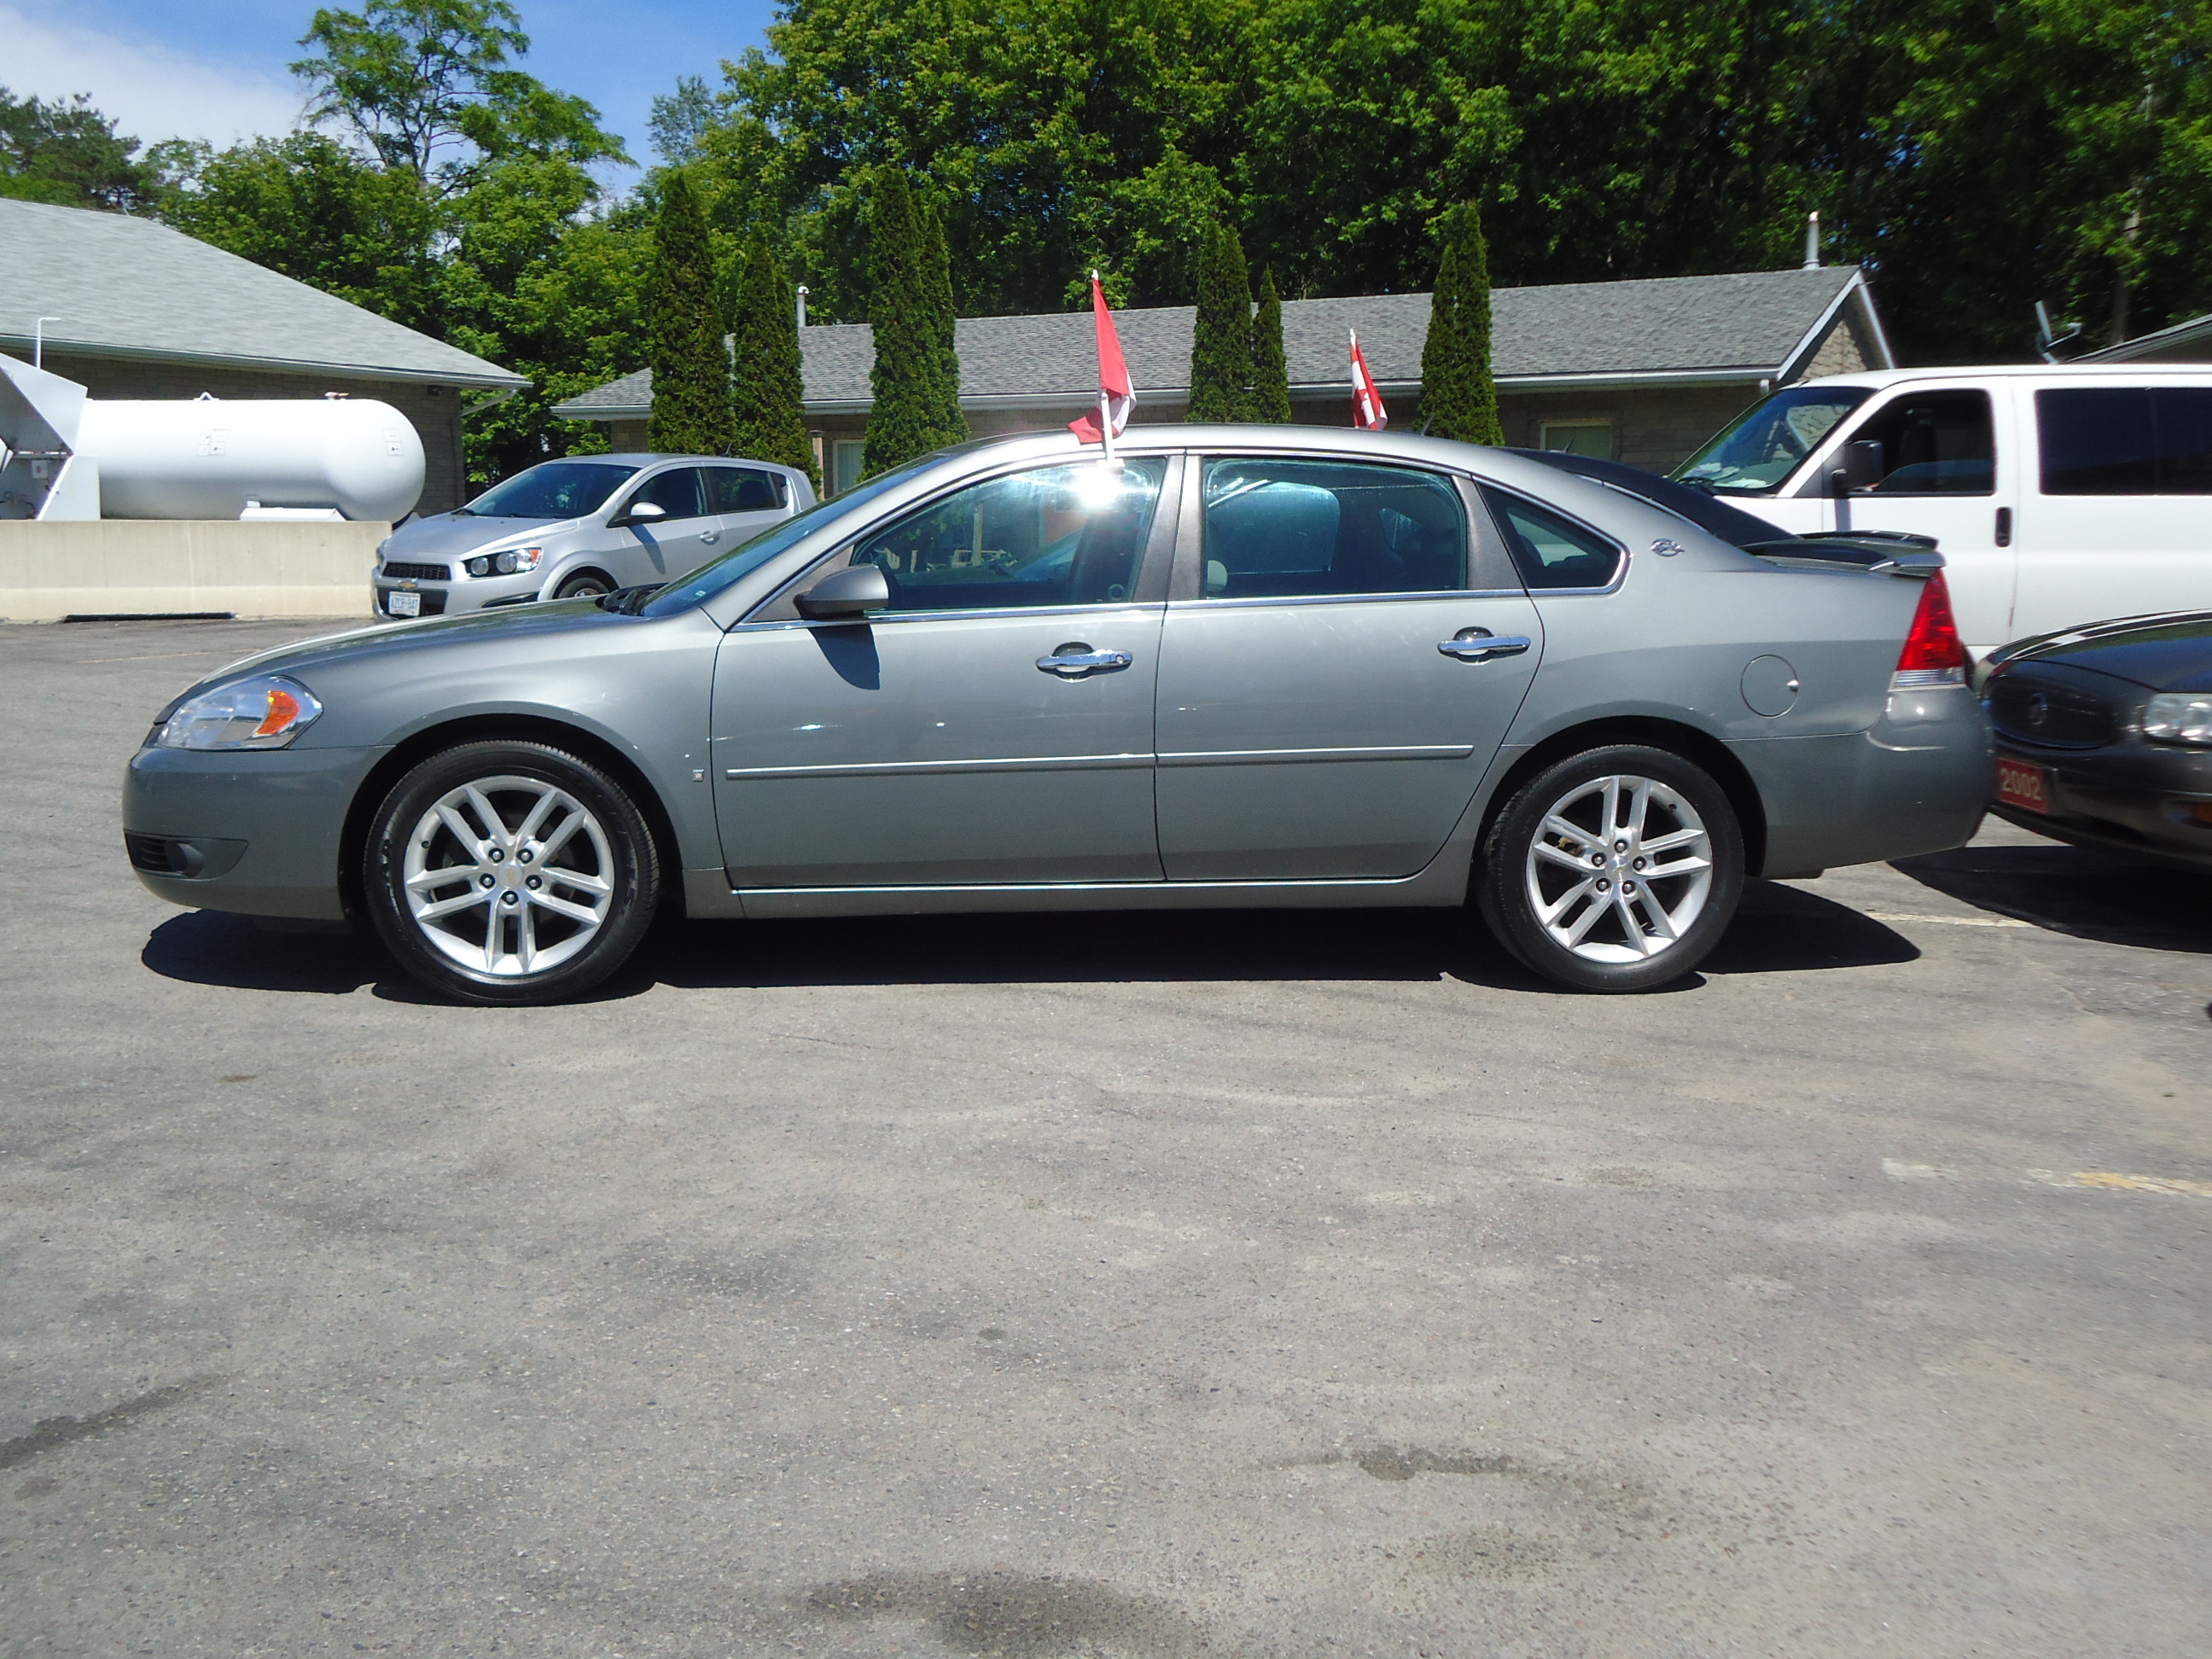 2008 Chevrolet Impala Ltz Grey 1 Bob Currie Auto Sales